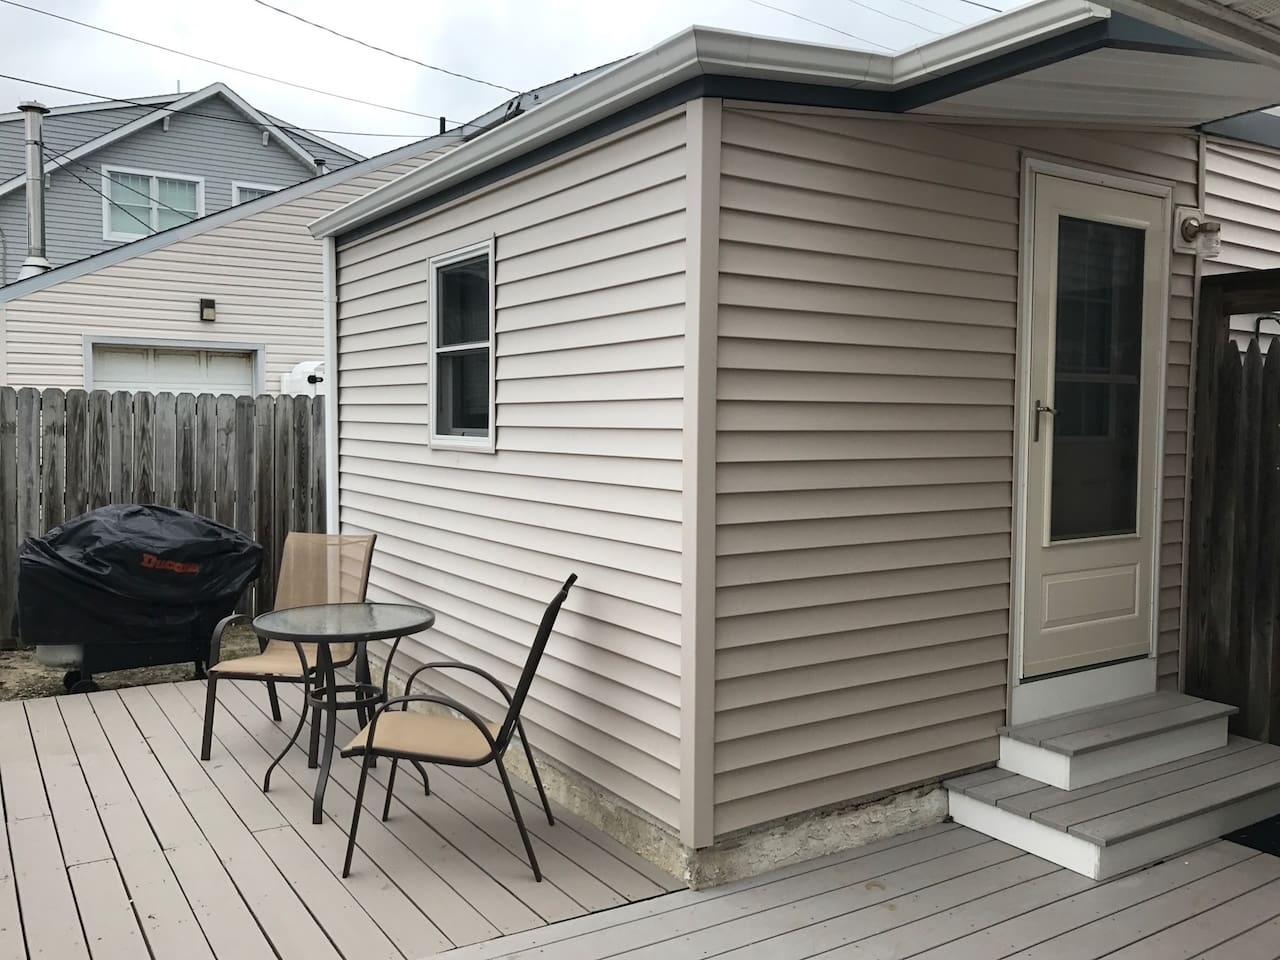 Relax on our back deck with patio seating and gas BBQ